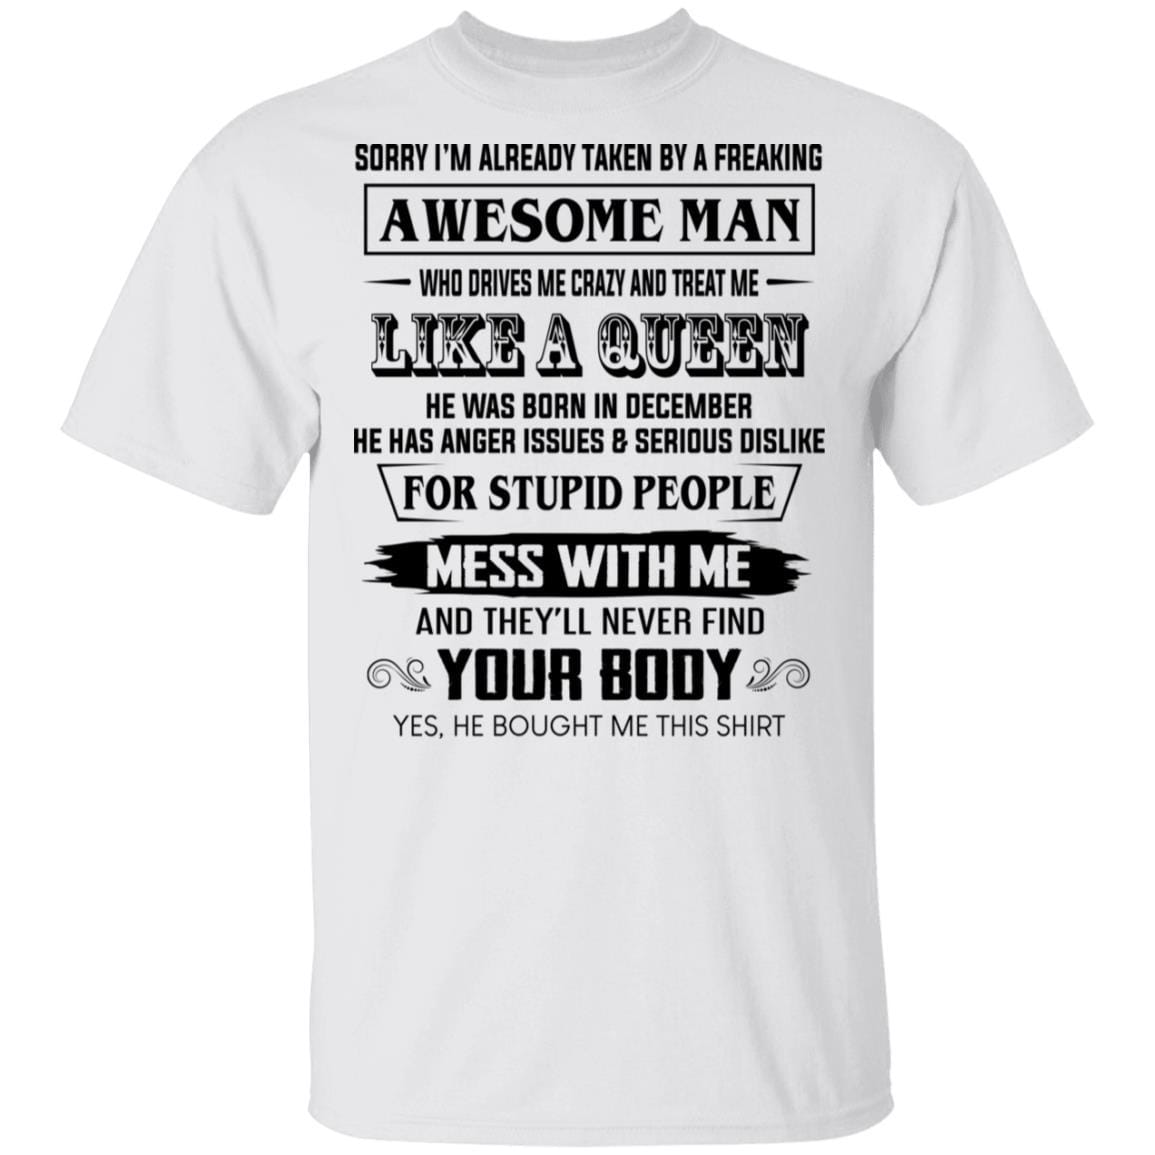 I'm Already Taken By A Freaking Awesome Man Who Drives Me Crazy And Born In December T-Shirts, Hoodies 1049-9974-86602258-48300 - Tee Ript